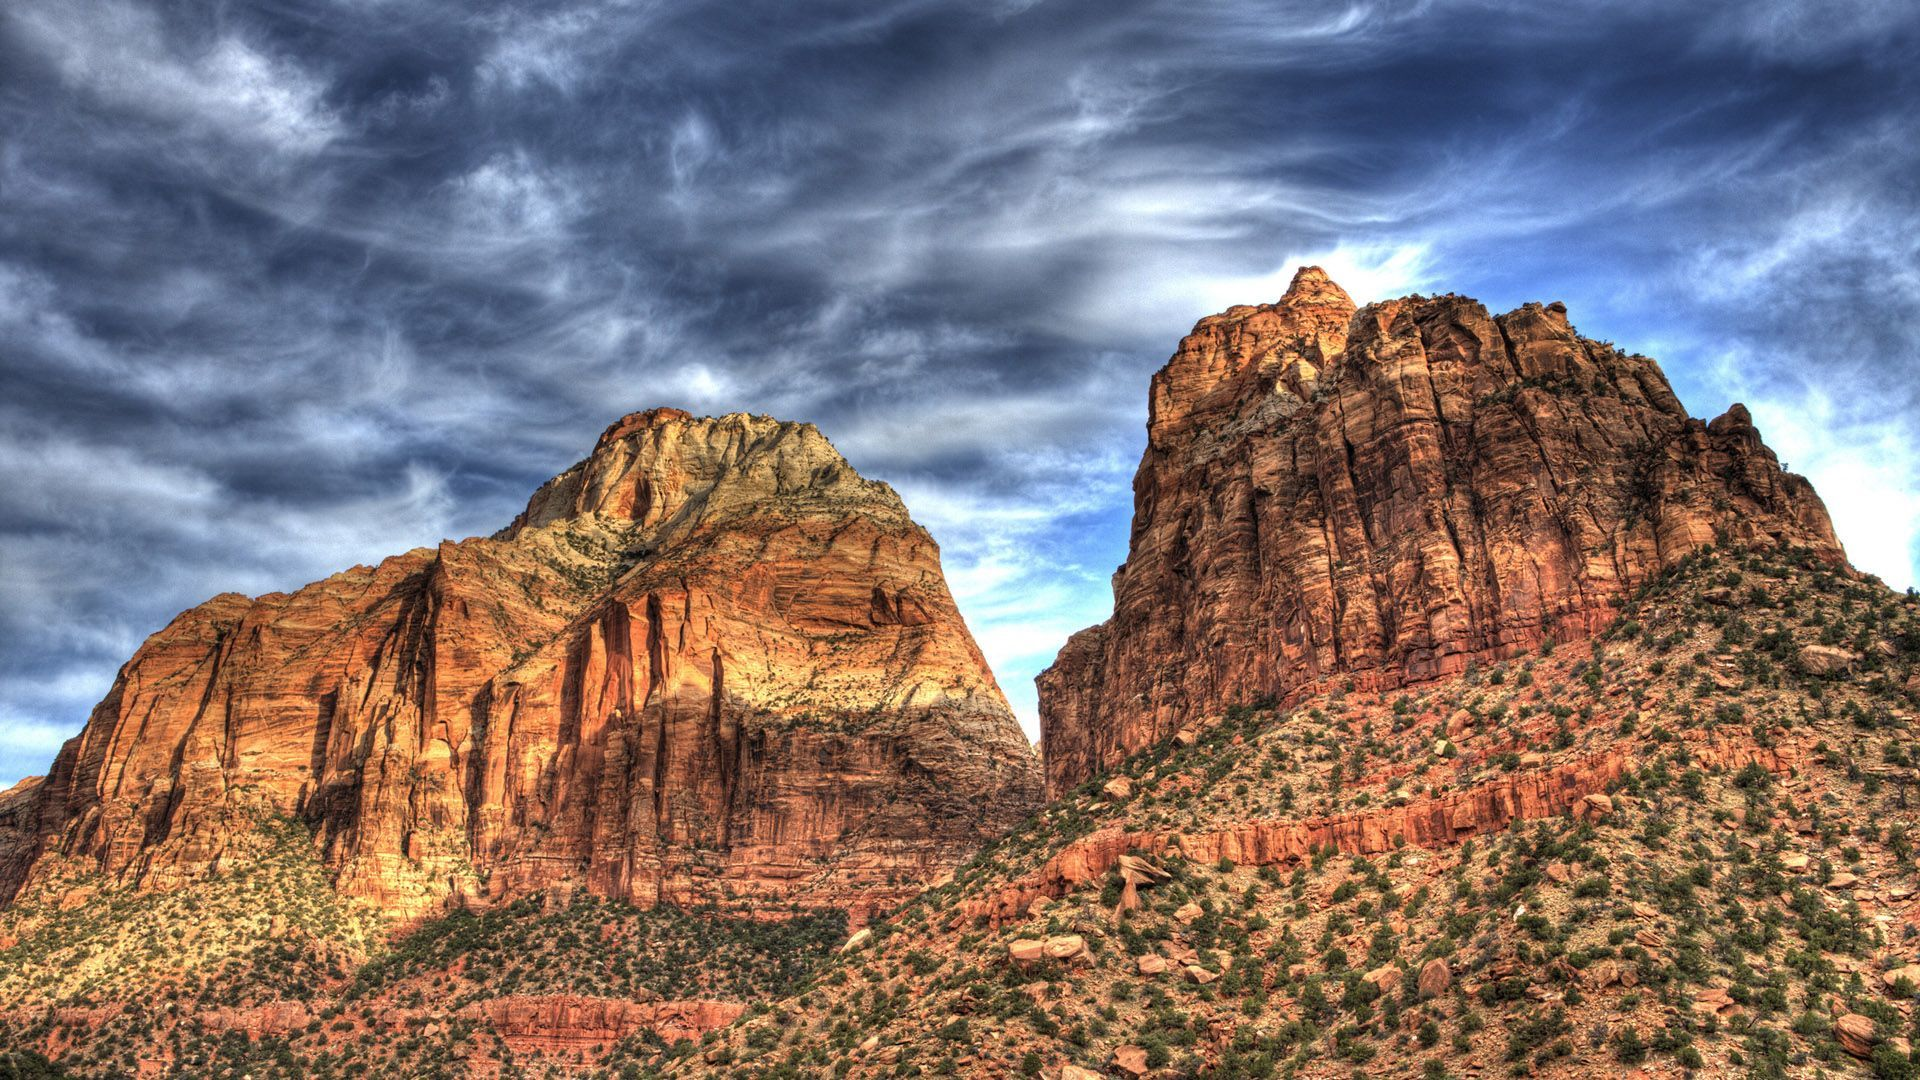 Zion National Park Utah HD Wallpaper 1920x1080 1920x1080